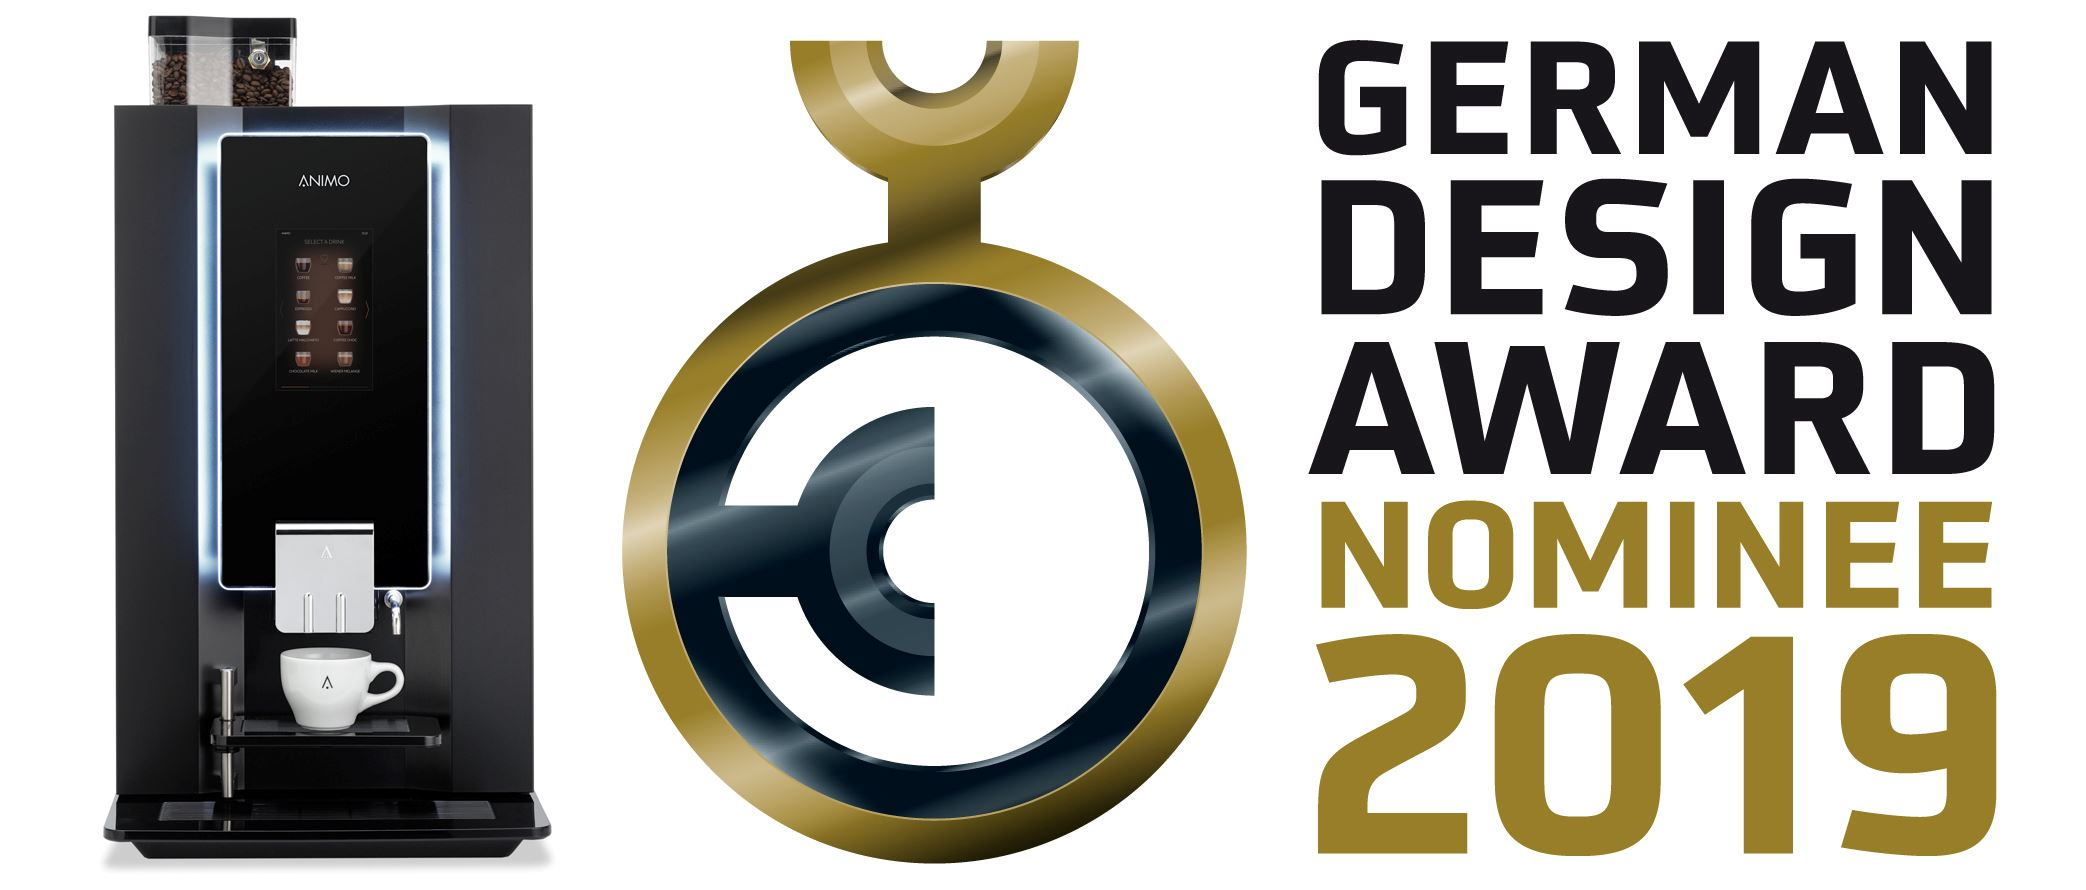 OptiBean Touch nominated German Design Award